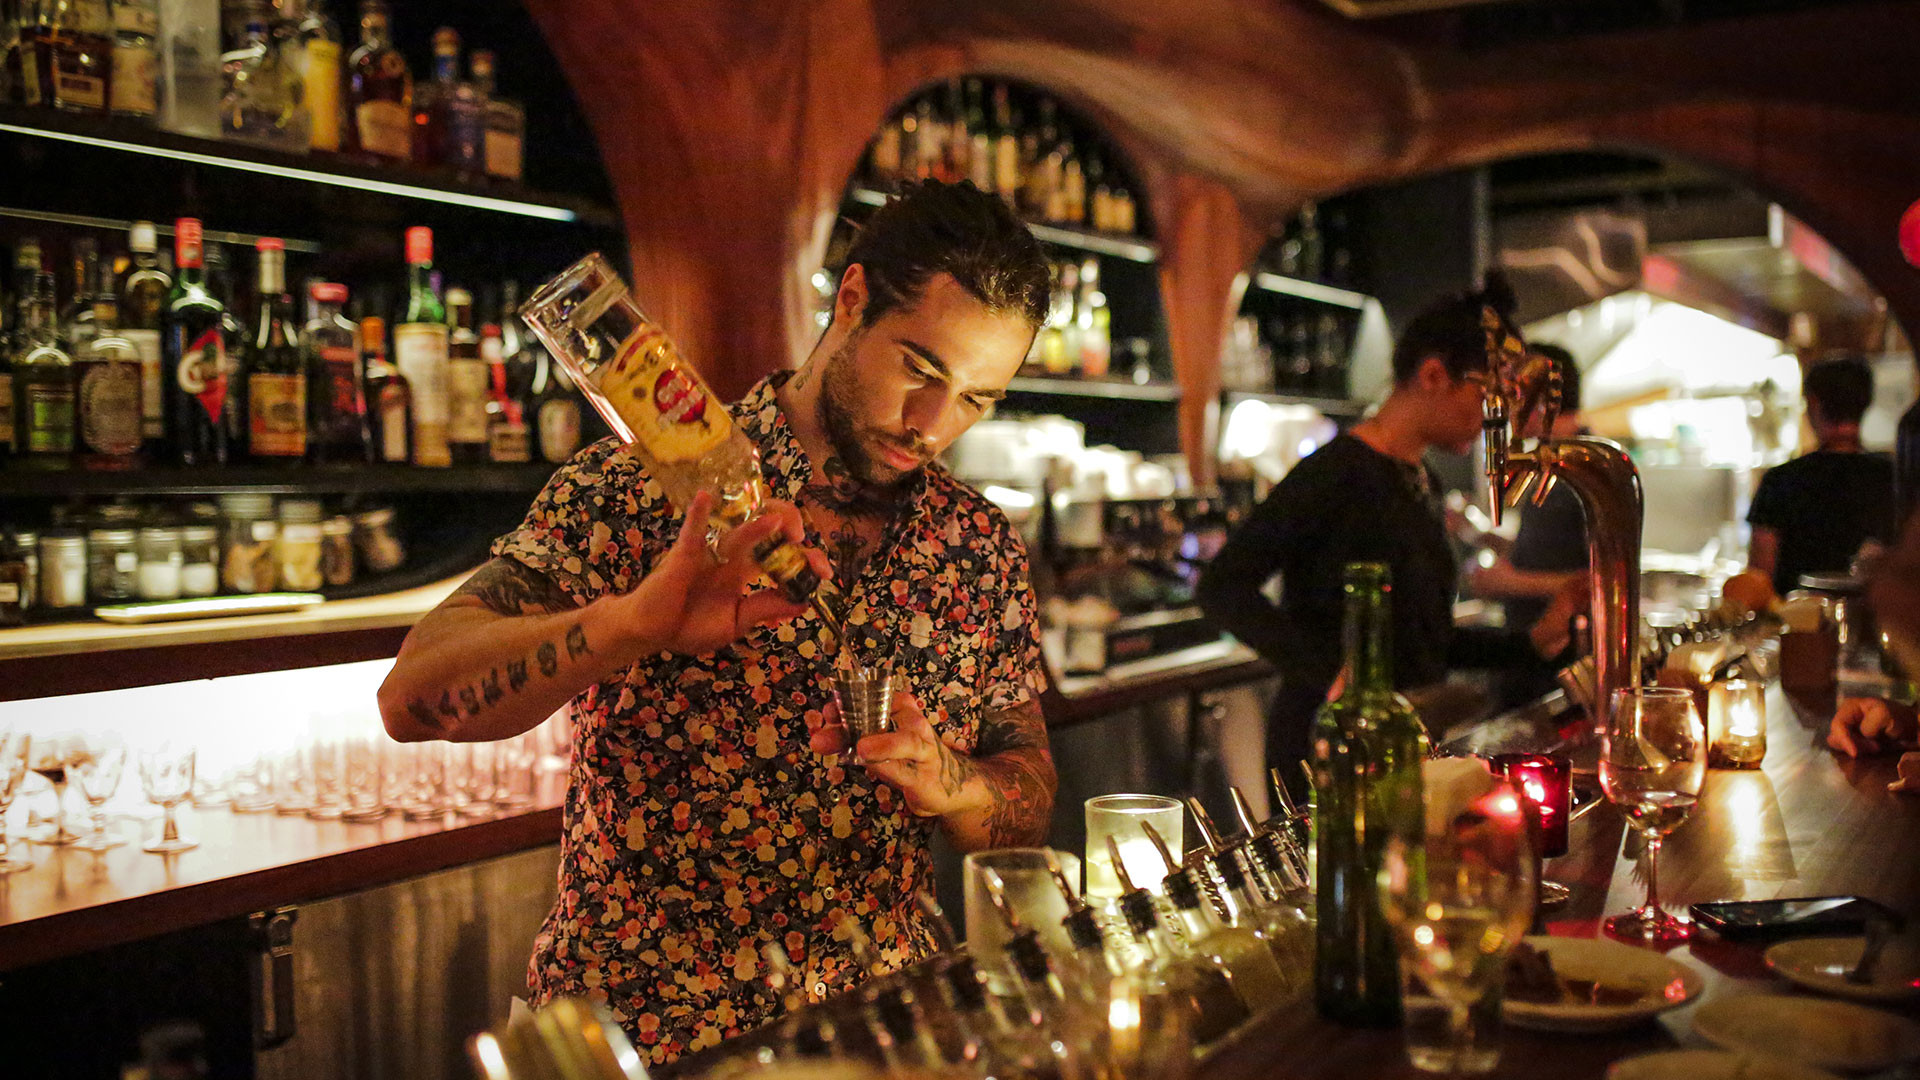 A bartender pours a drink at Bar Raval